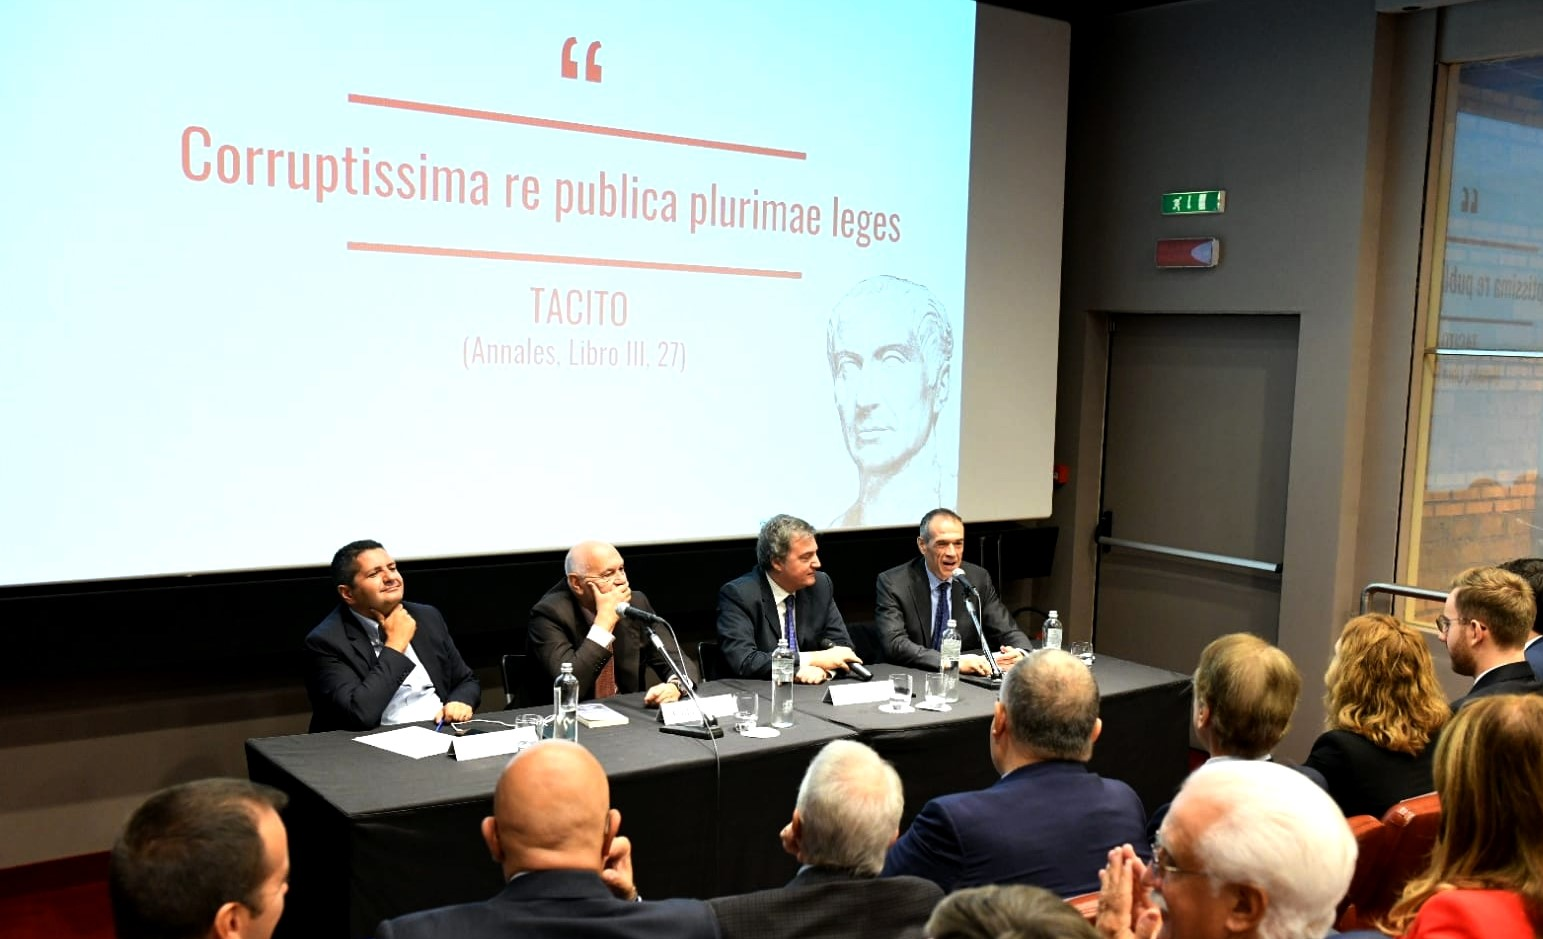 Nationalization and Privatization. Italy between the past and the future – Roundtable with Prof. Carlo Cottarelli, Carlo Nordio, Marco Bentivogli